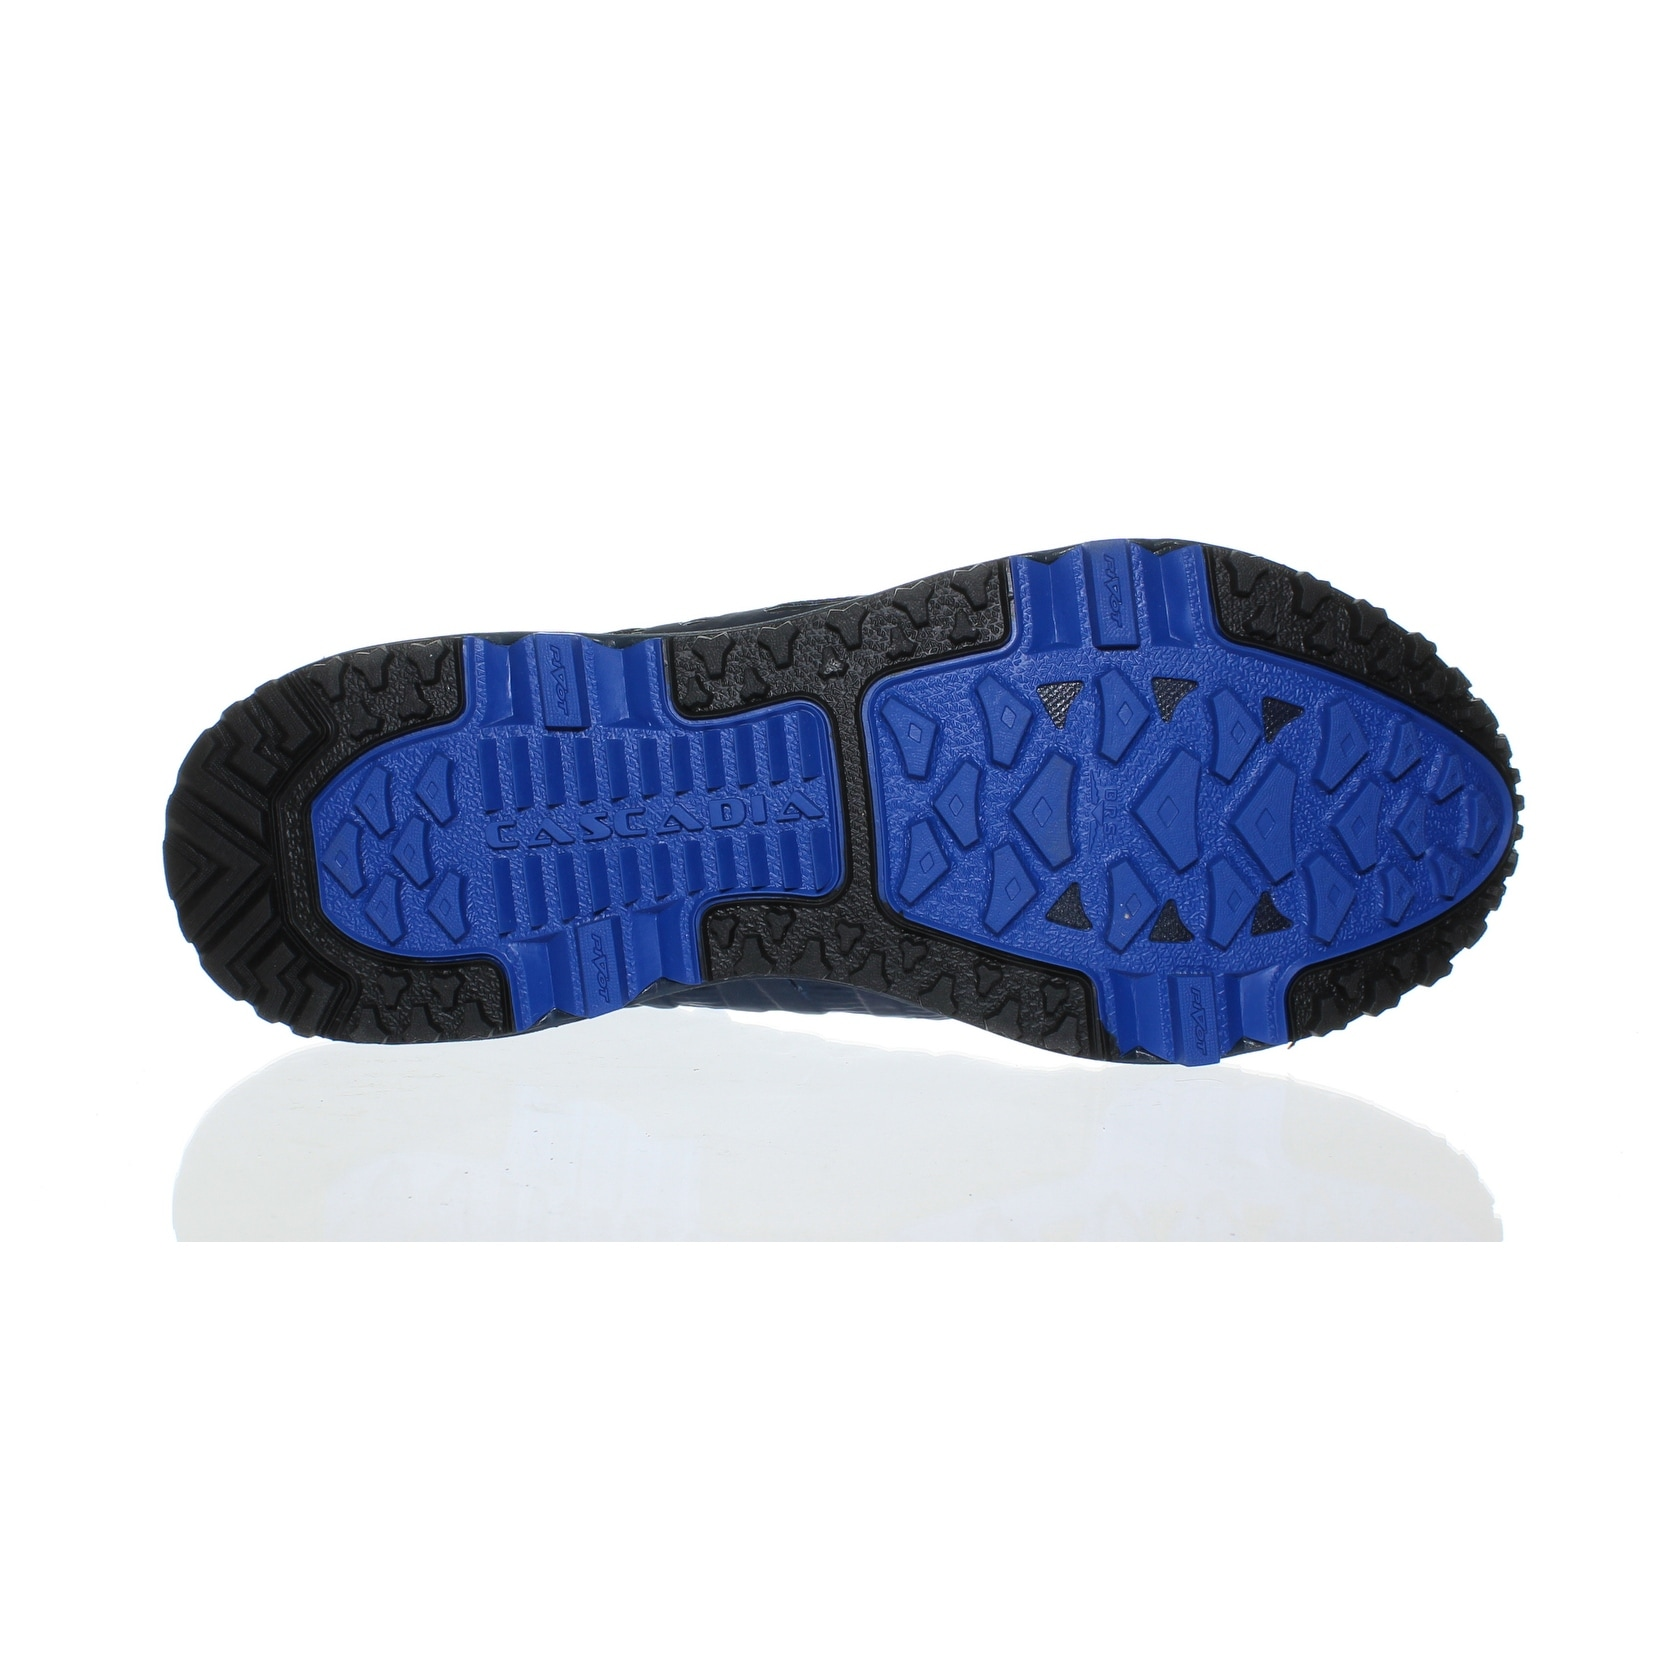 37cdbc08a8fa6 Shop Brooks Mens Cascadia 11 Gtx Blue Running Shoes Size 10.5 - Free  Shipping Today - Overstock - 25706921